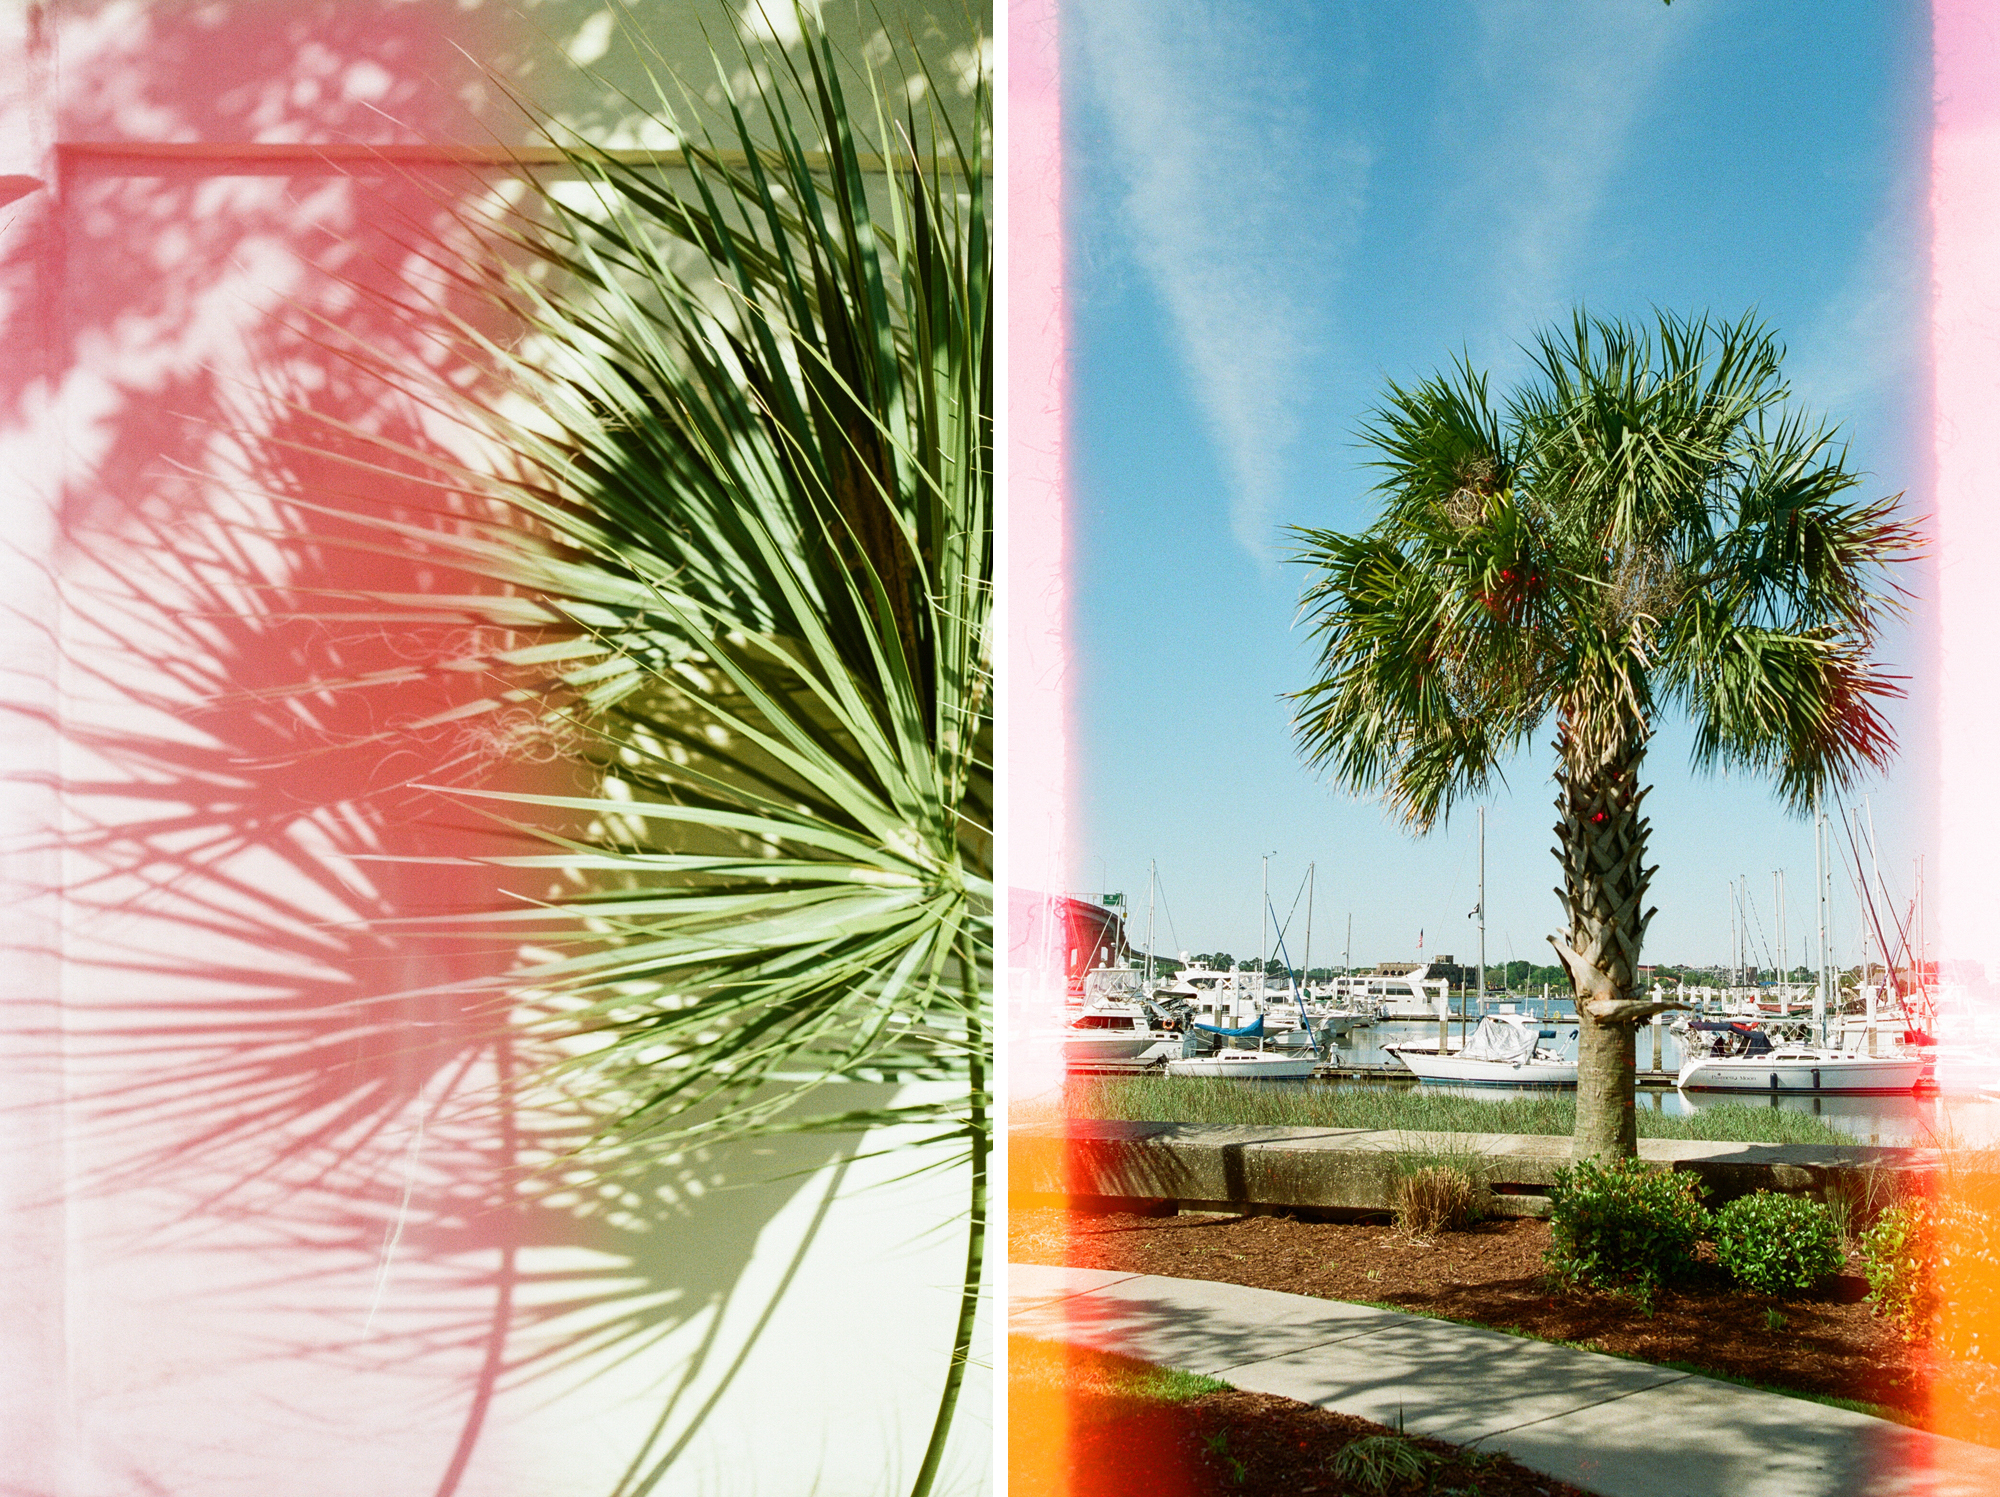 charleston-harbor-film-photography-35mm-film-analog-charleston-photographer-001